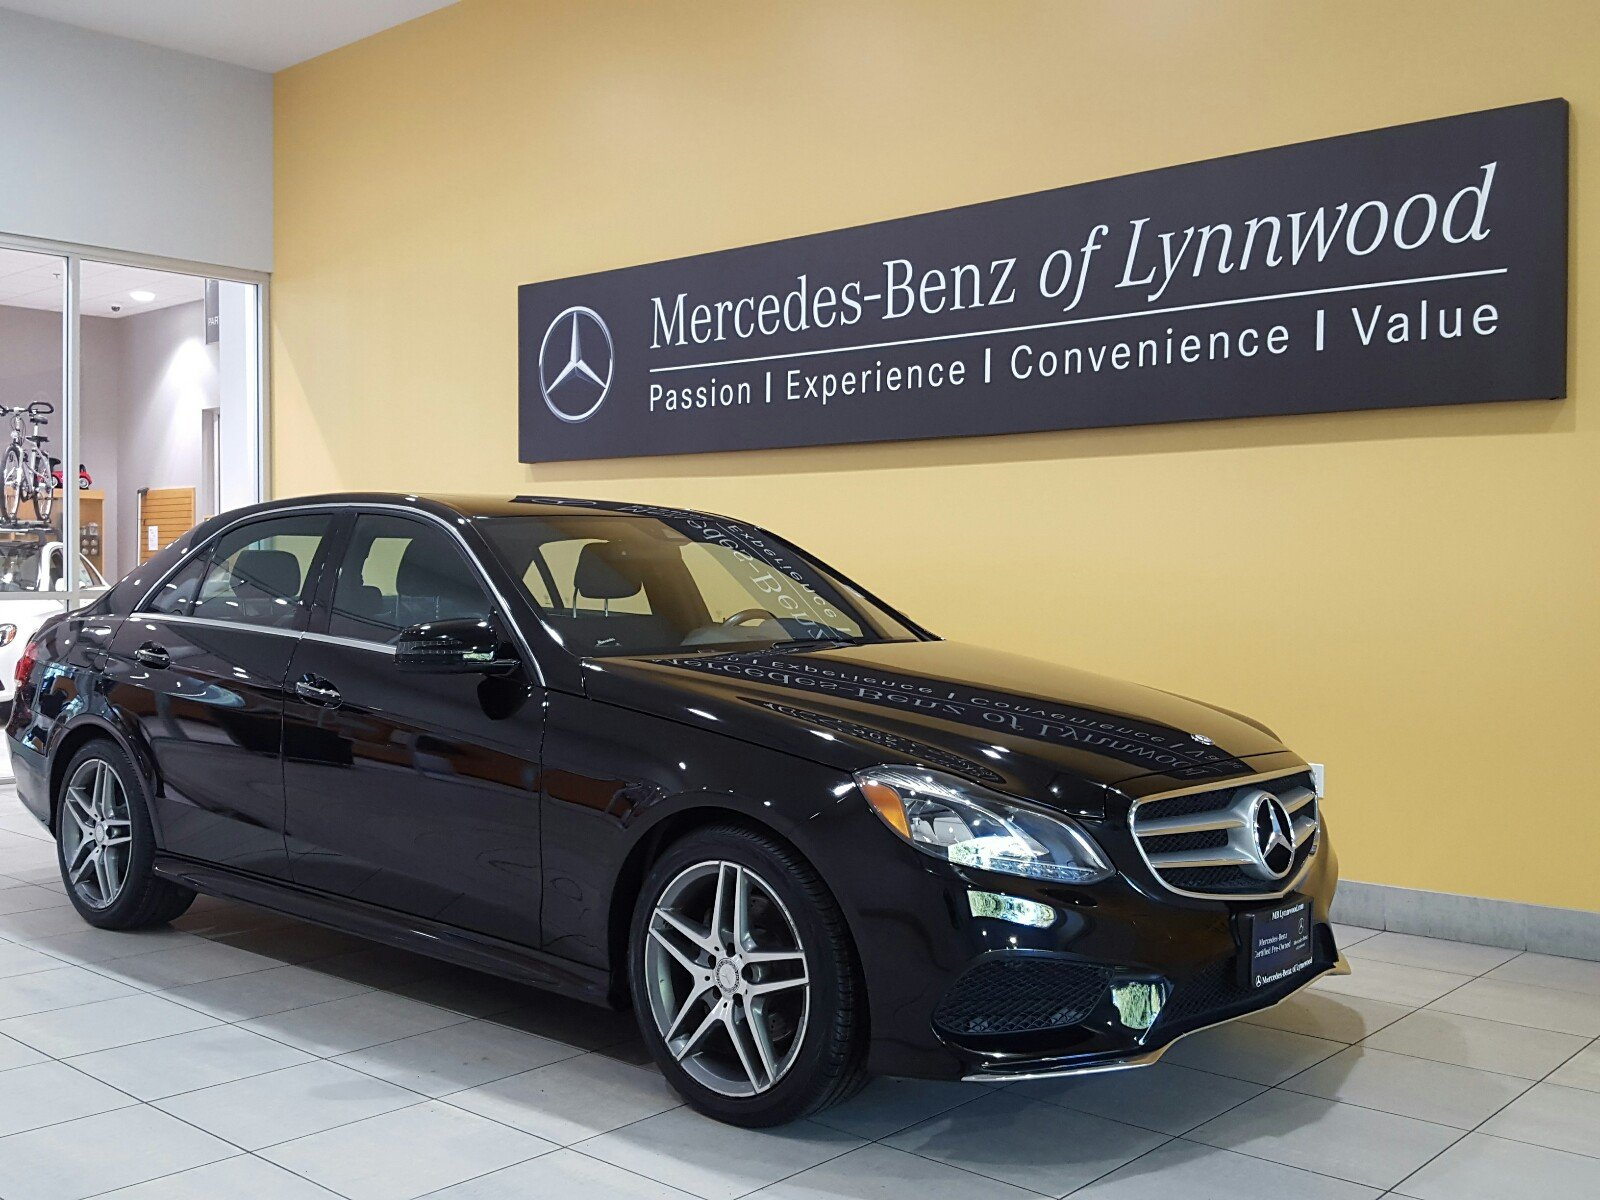 Certified pre owned 2015 mercedes benz e class e 350 sport for Mercedes benz pre owned vehicles